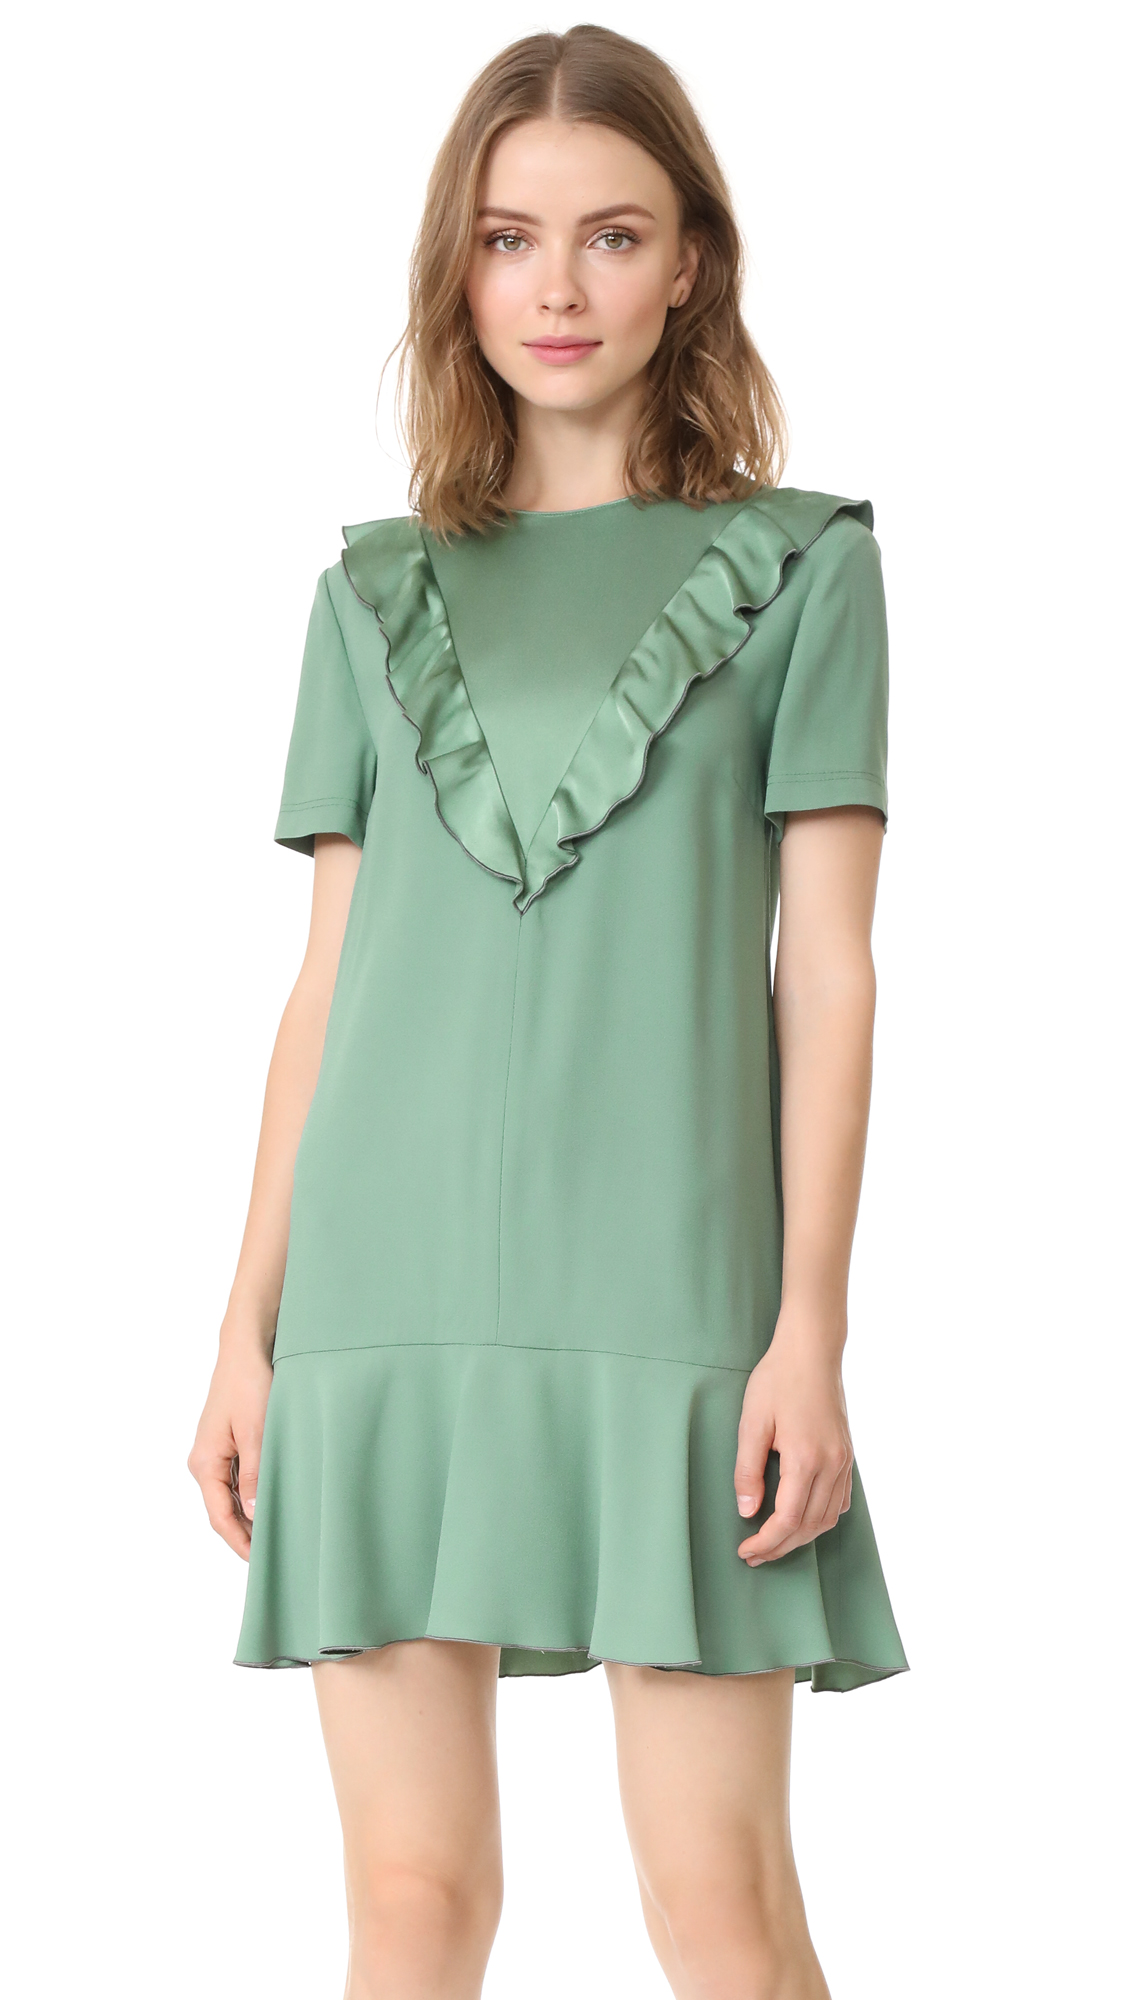 RED Valentino Ruffle Neck Crepe Dress - Sage